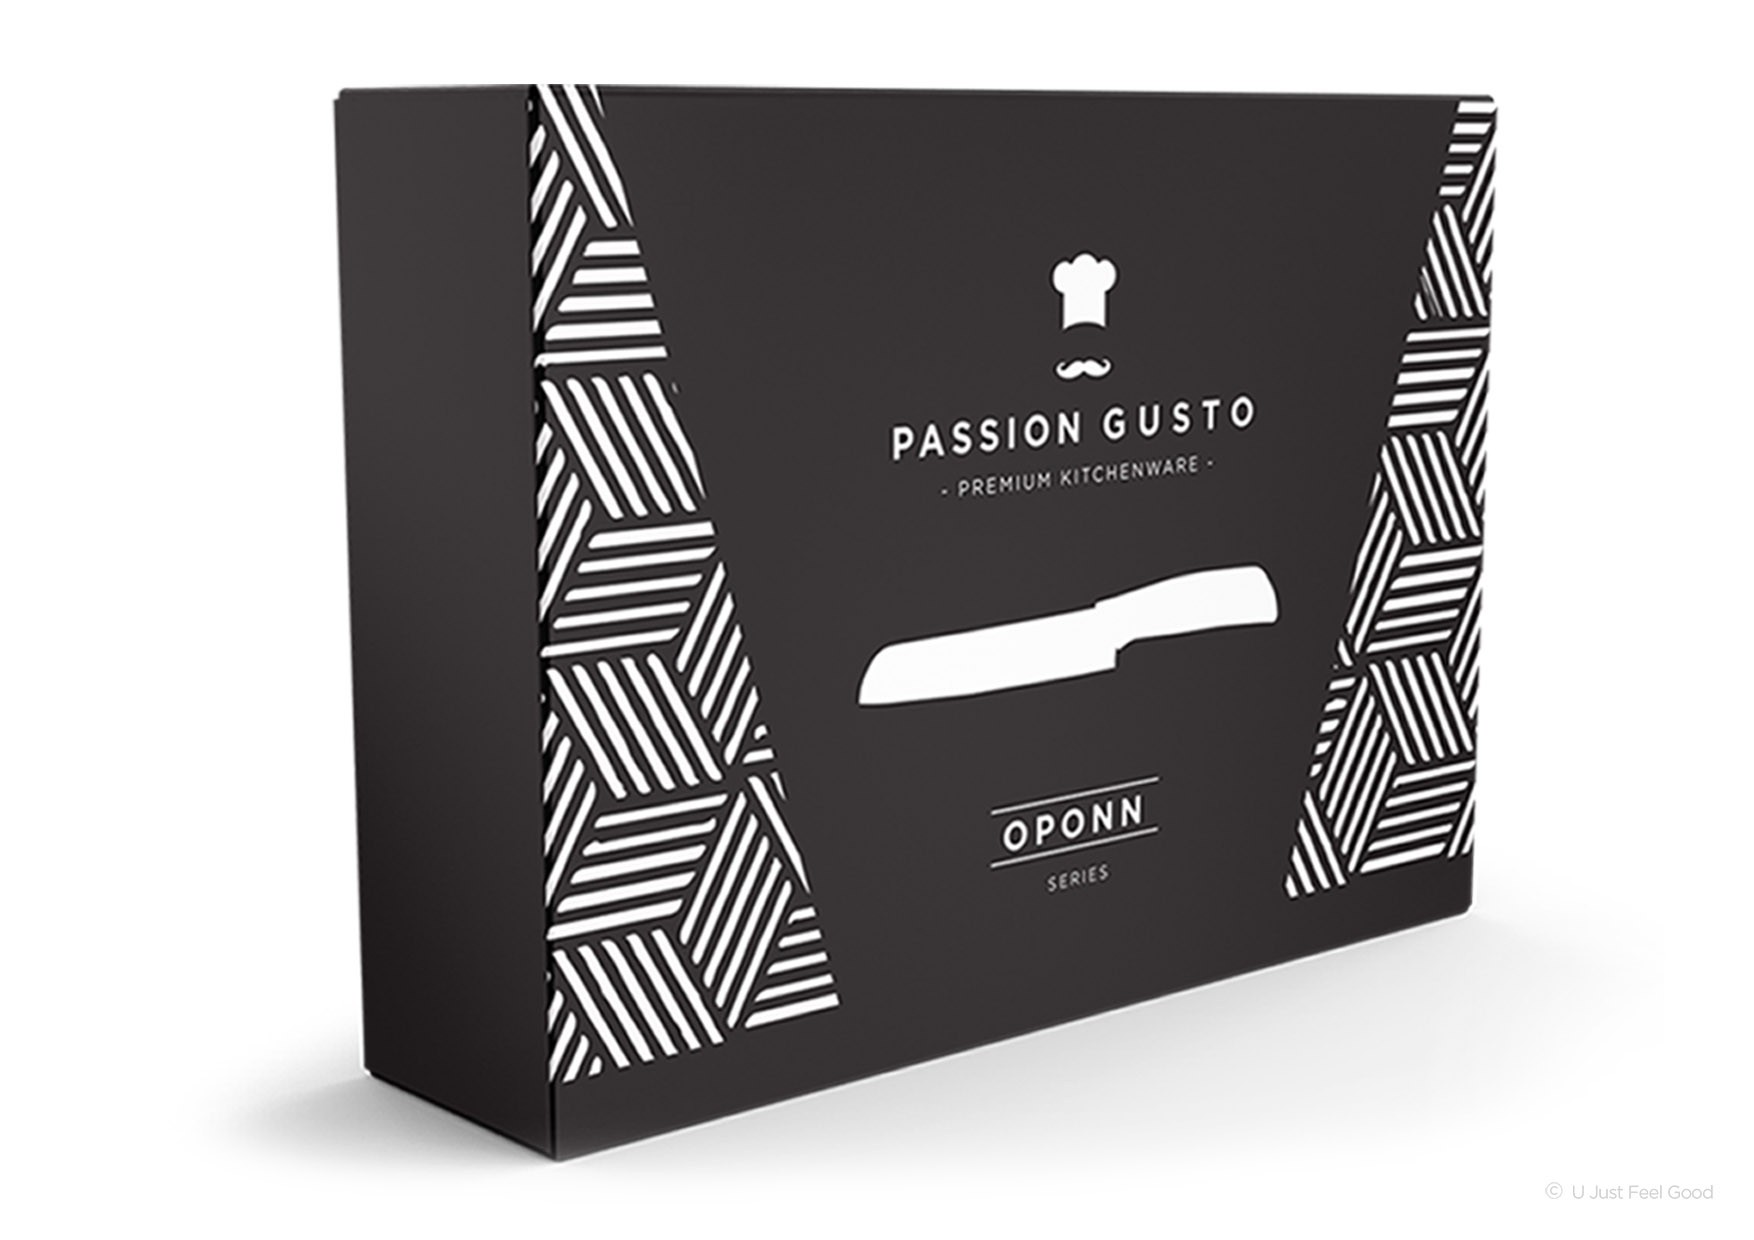 Passion Gusto | Kitchenware, Logo & Packaging Design